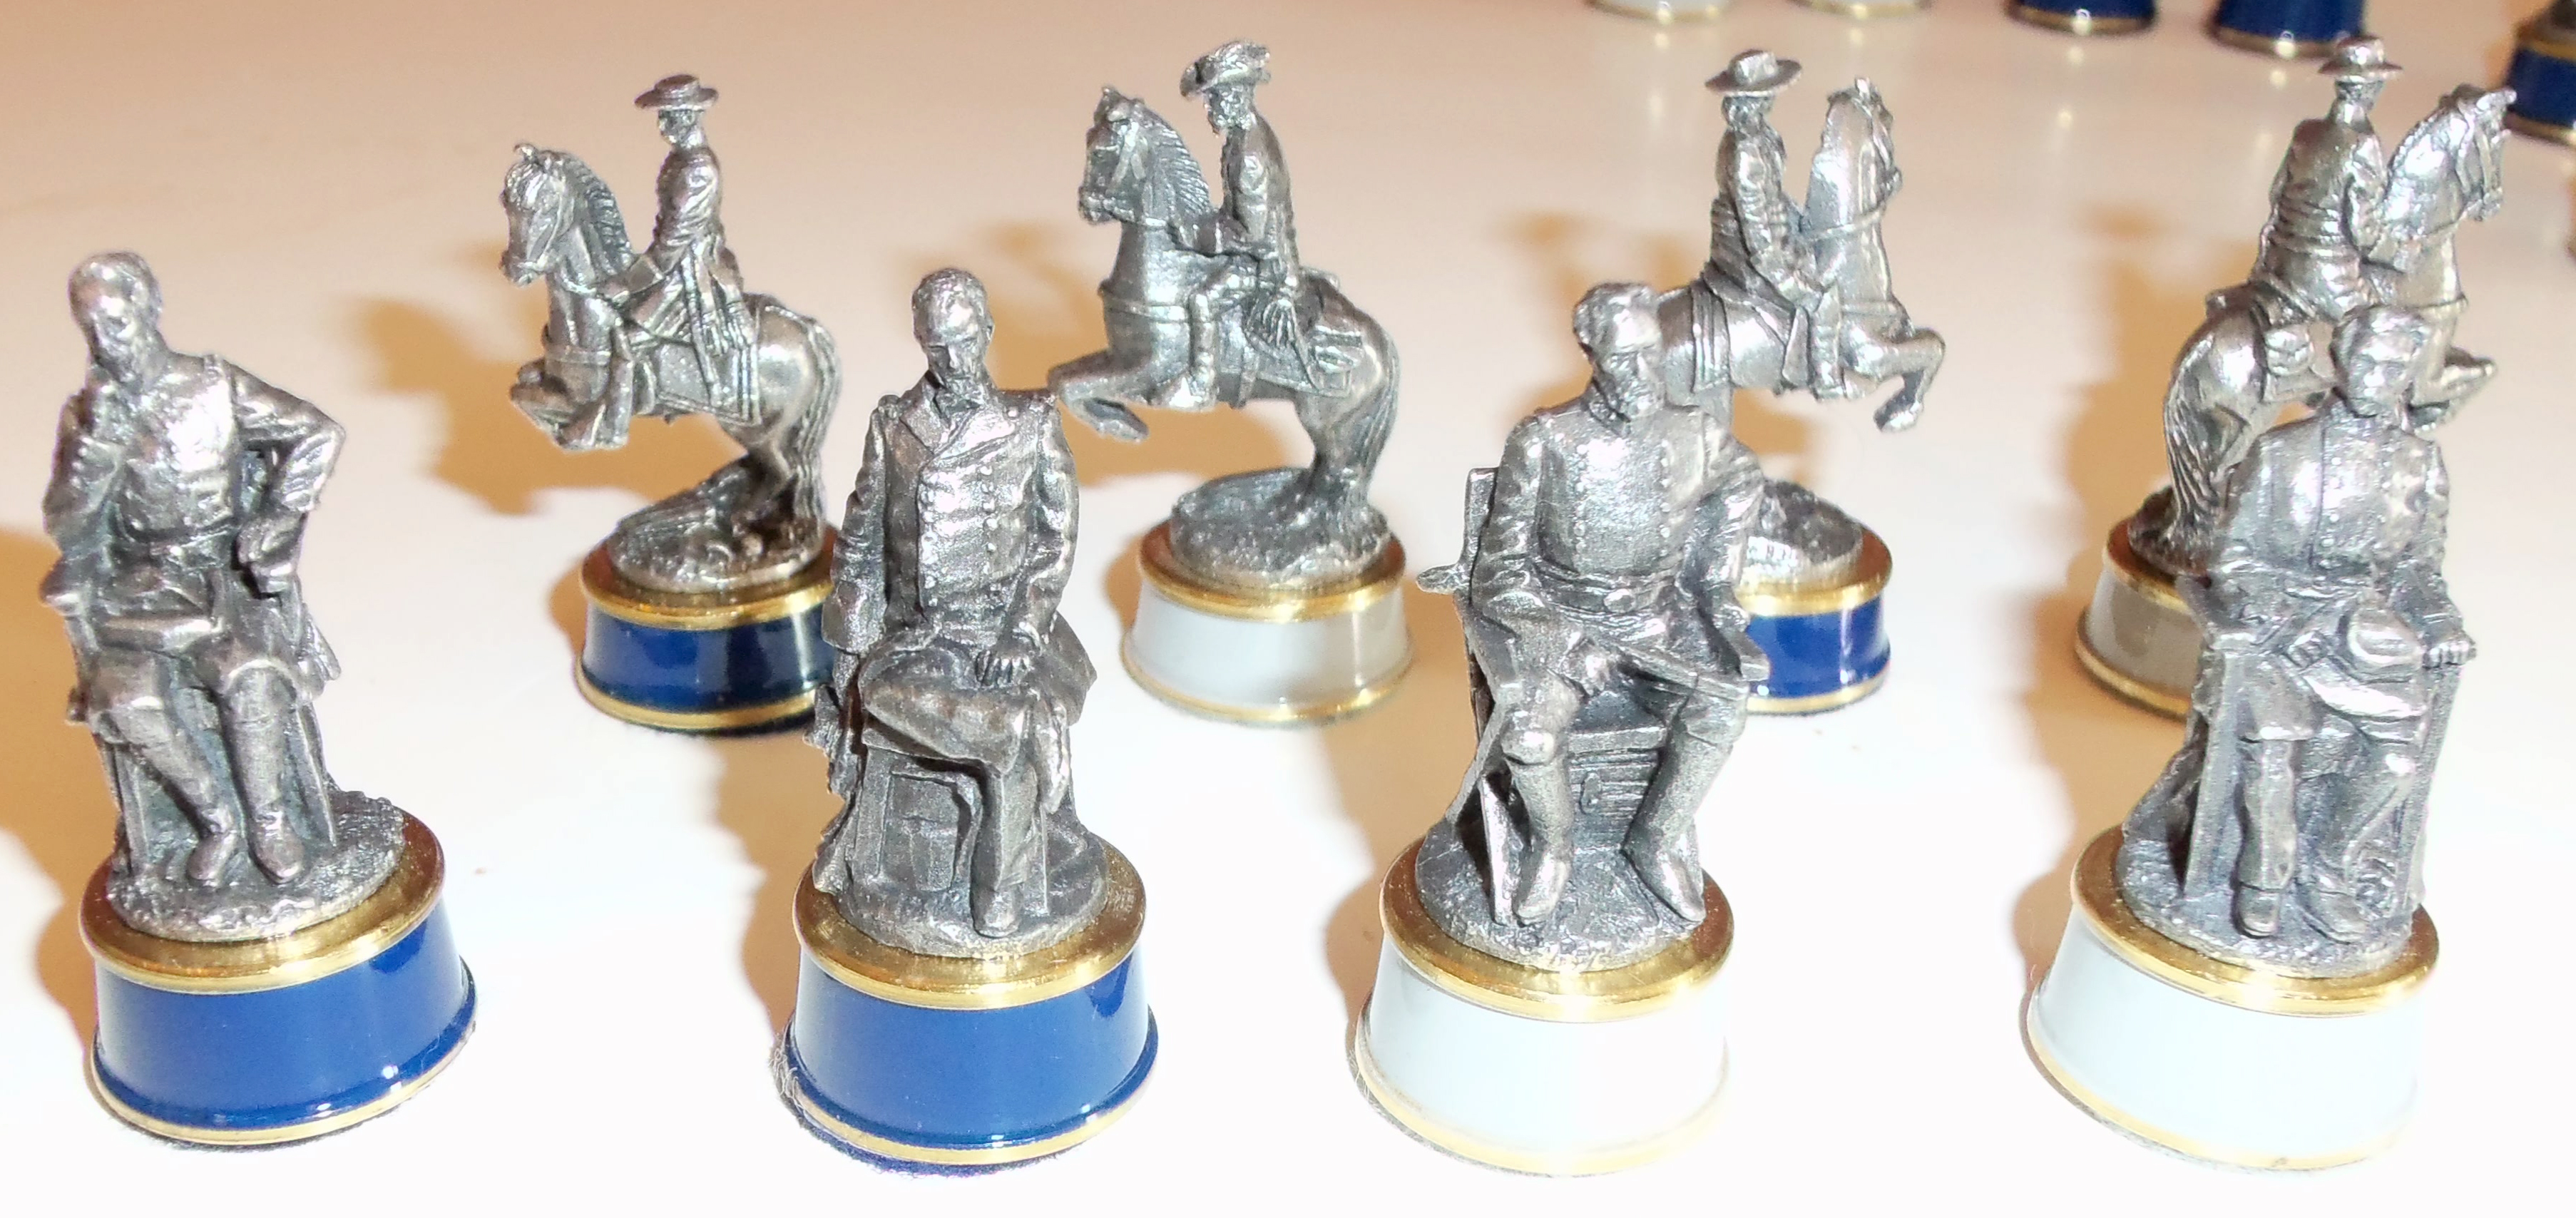 Galerry brass and pewter chess set